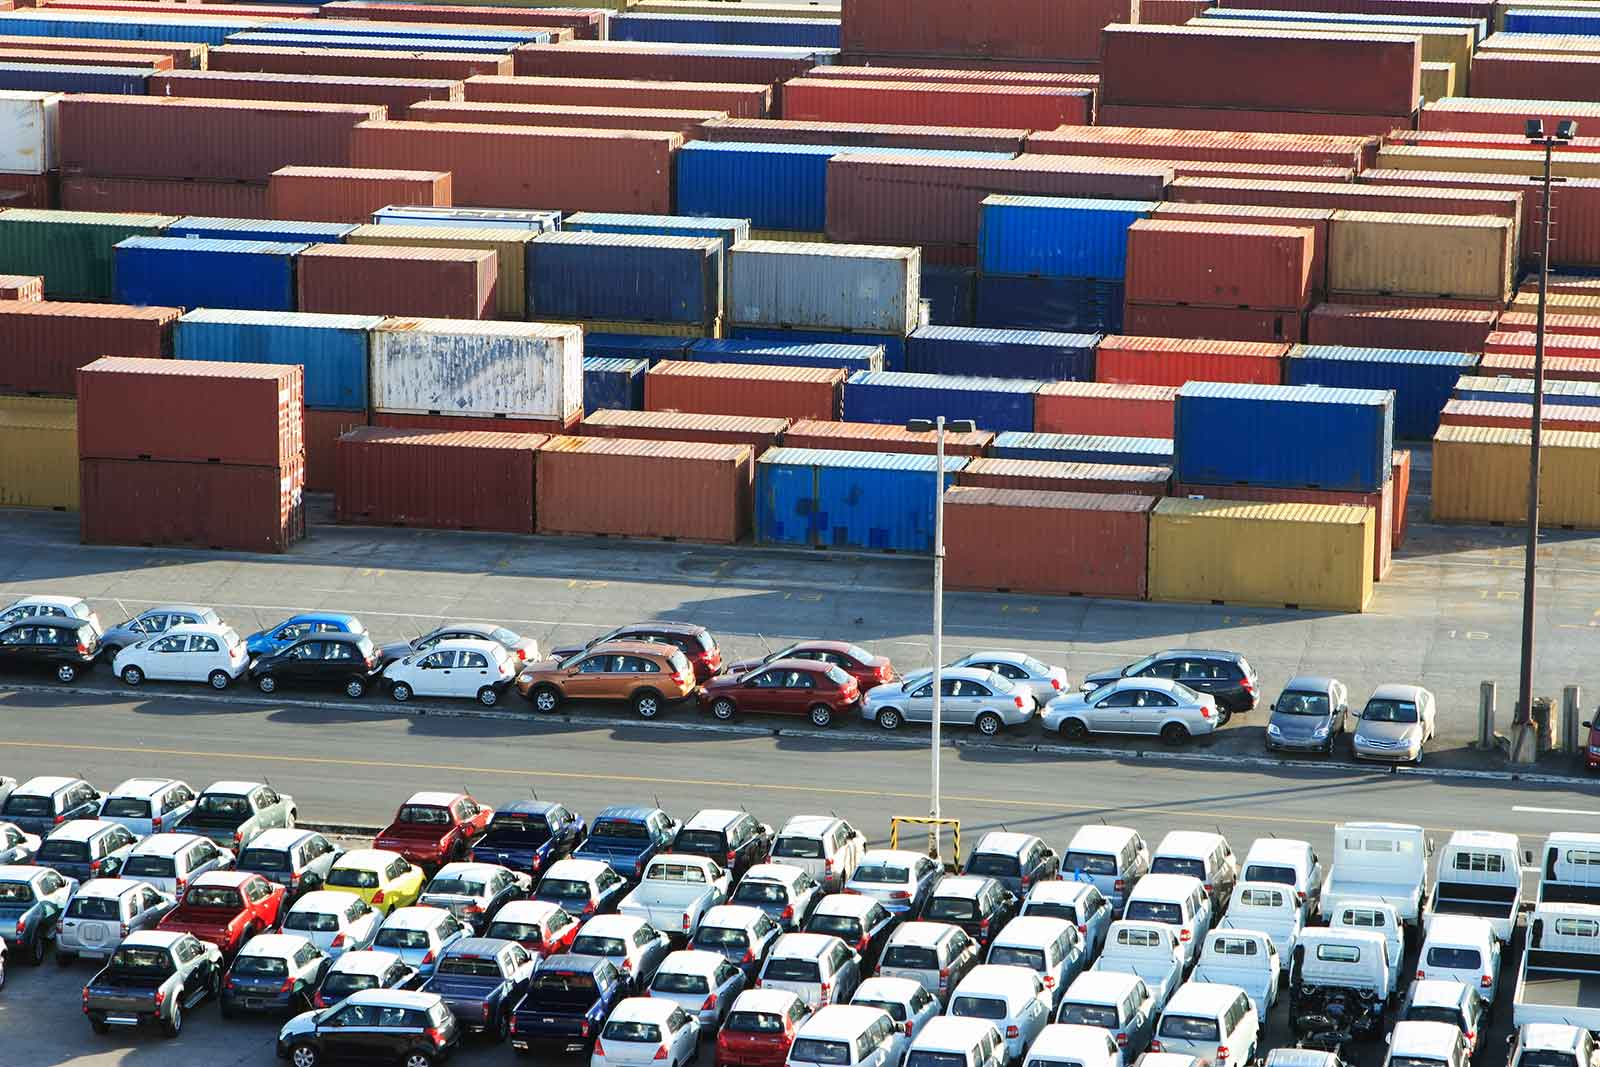 cars at port waiting to be loaded for shipment